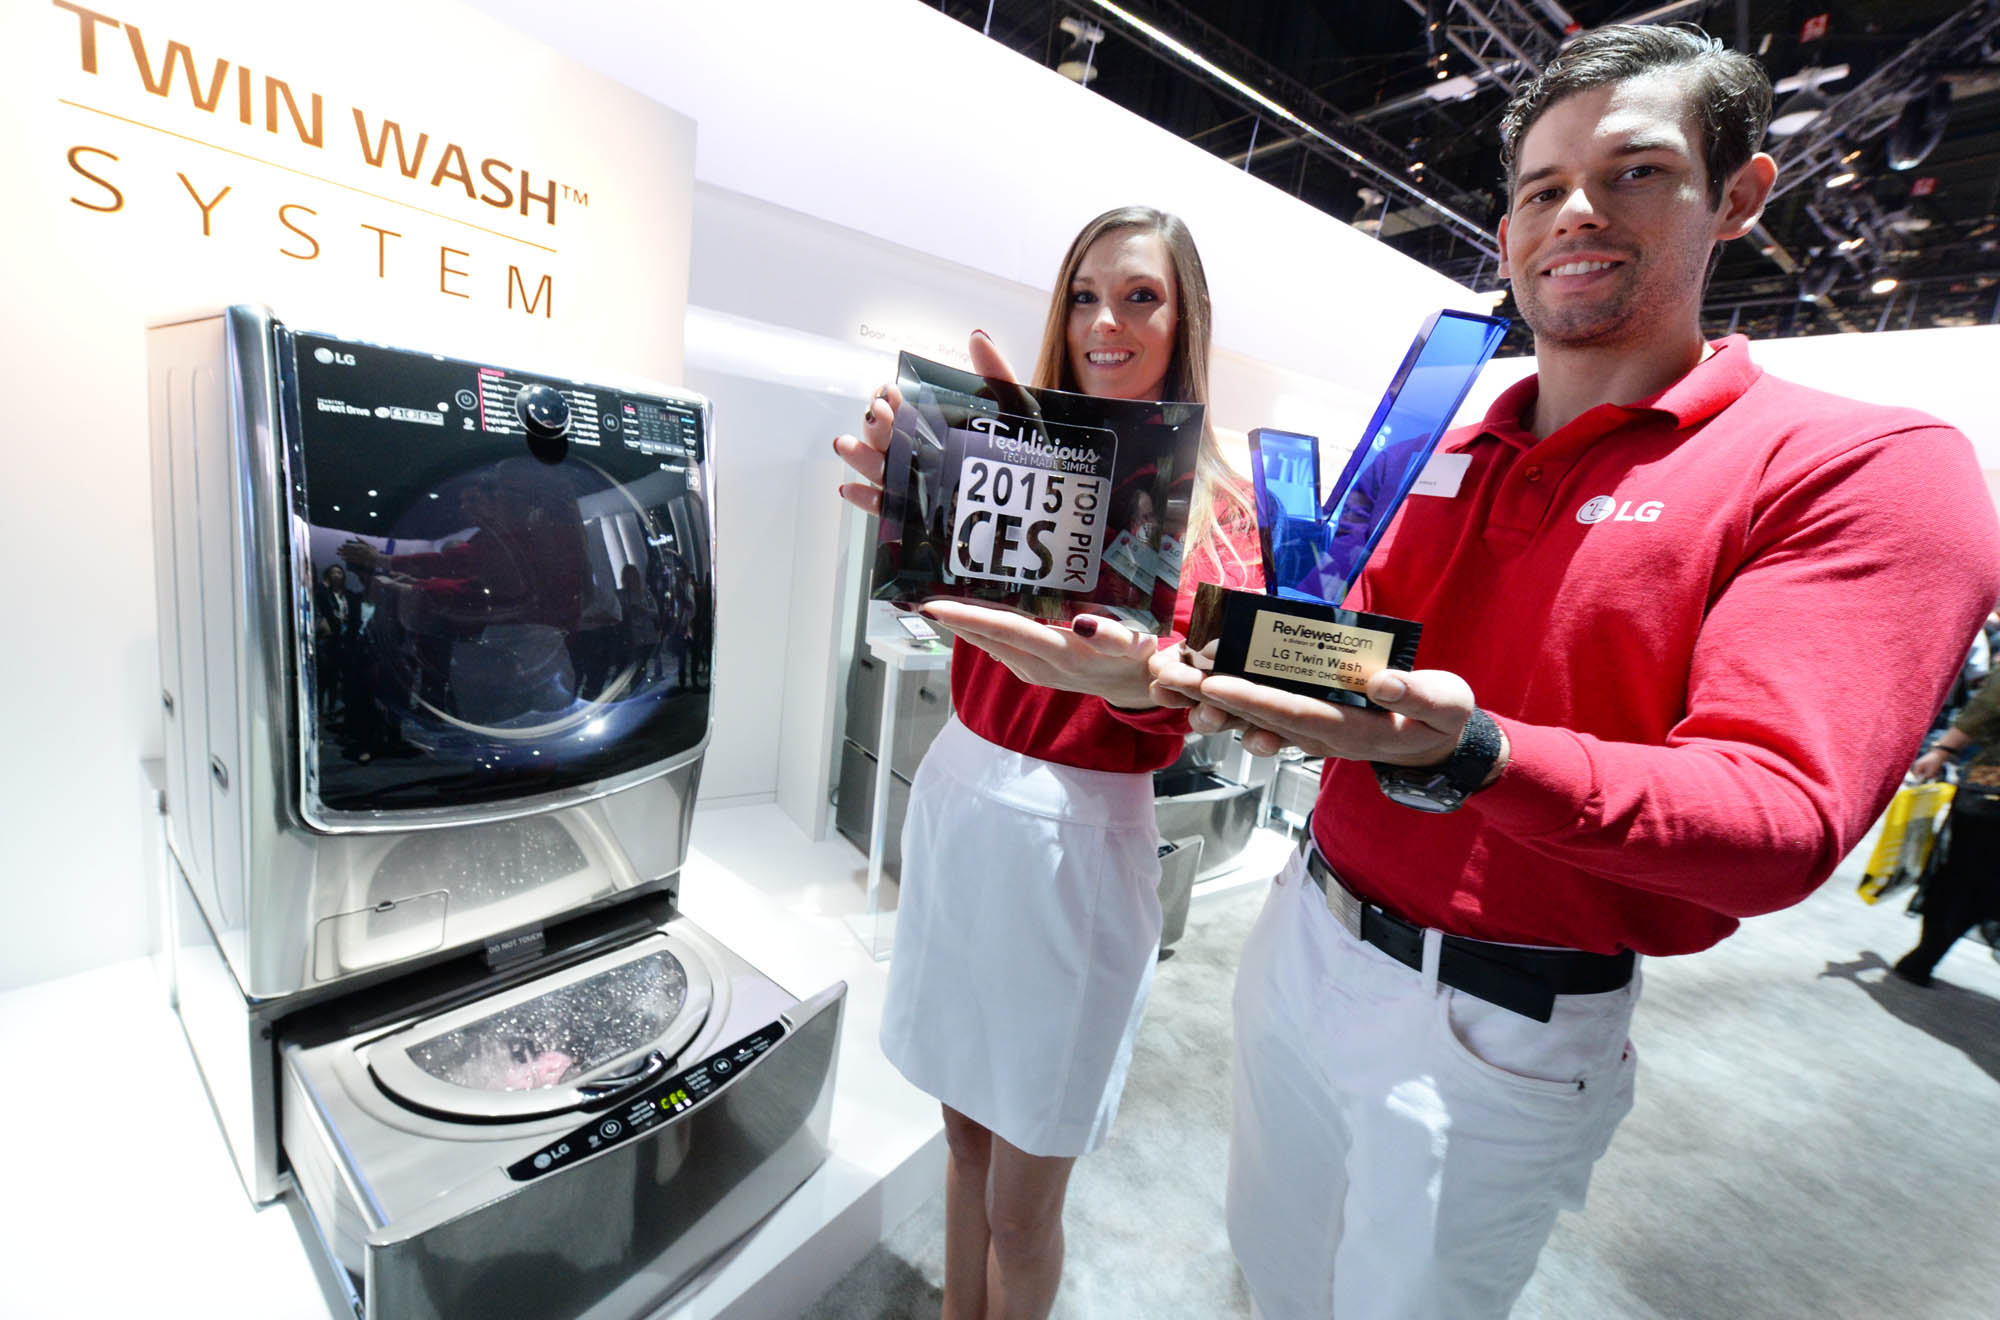 LG's Tromm washing machine won both a Top Pick CES 2015 and a Reviewed.com CES Editor's Choice 2015 award this year.